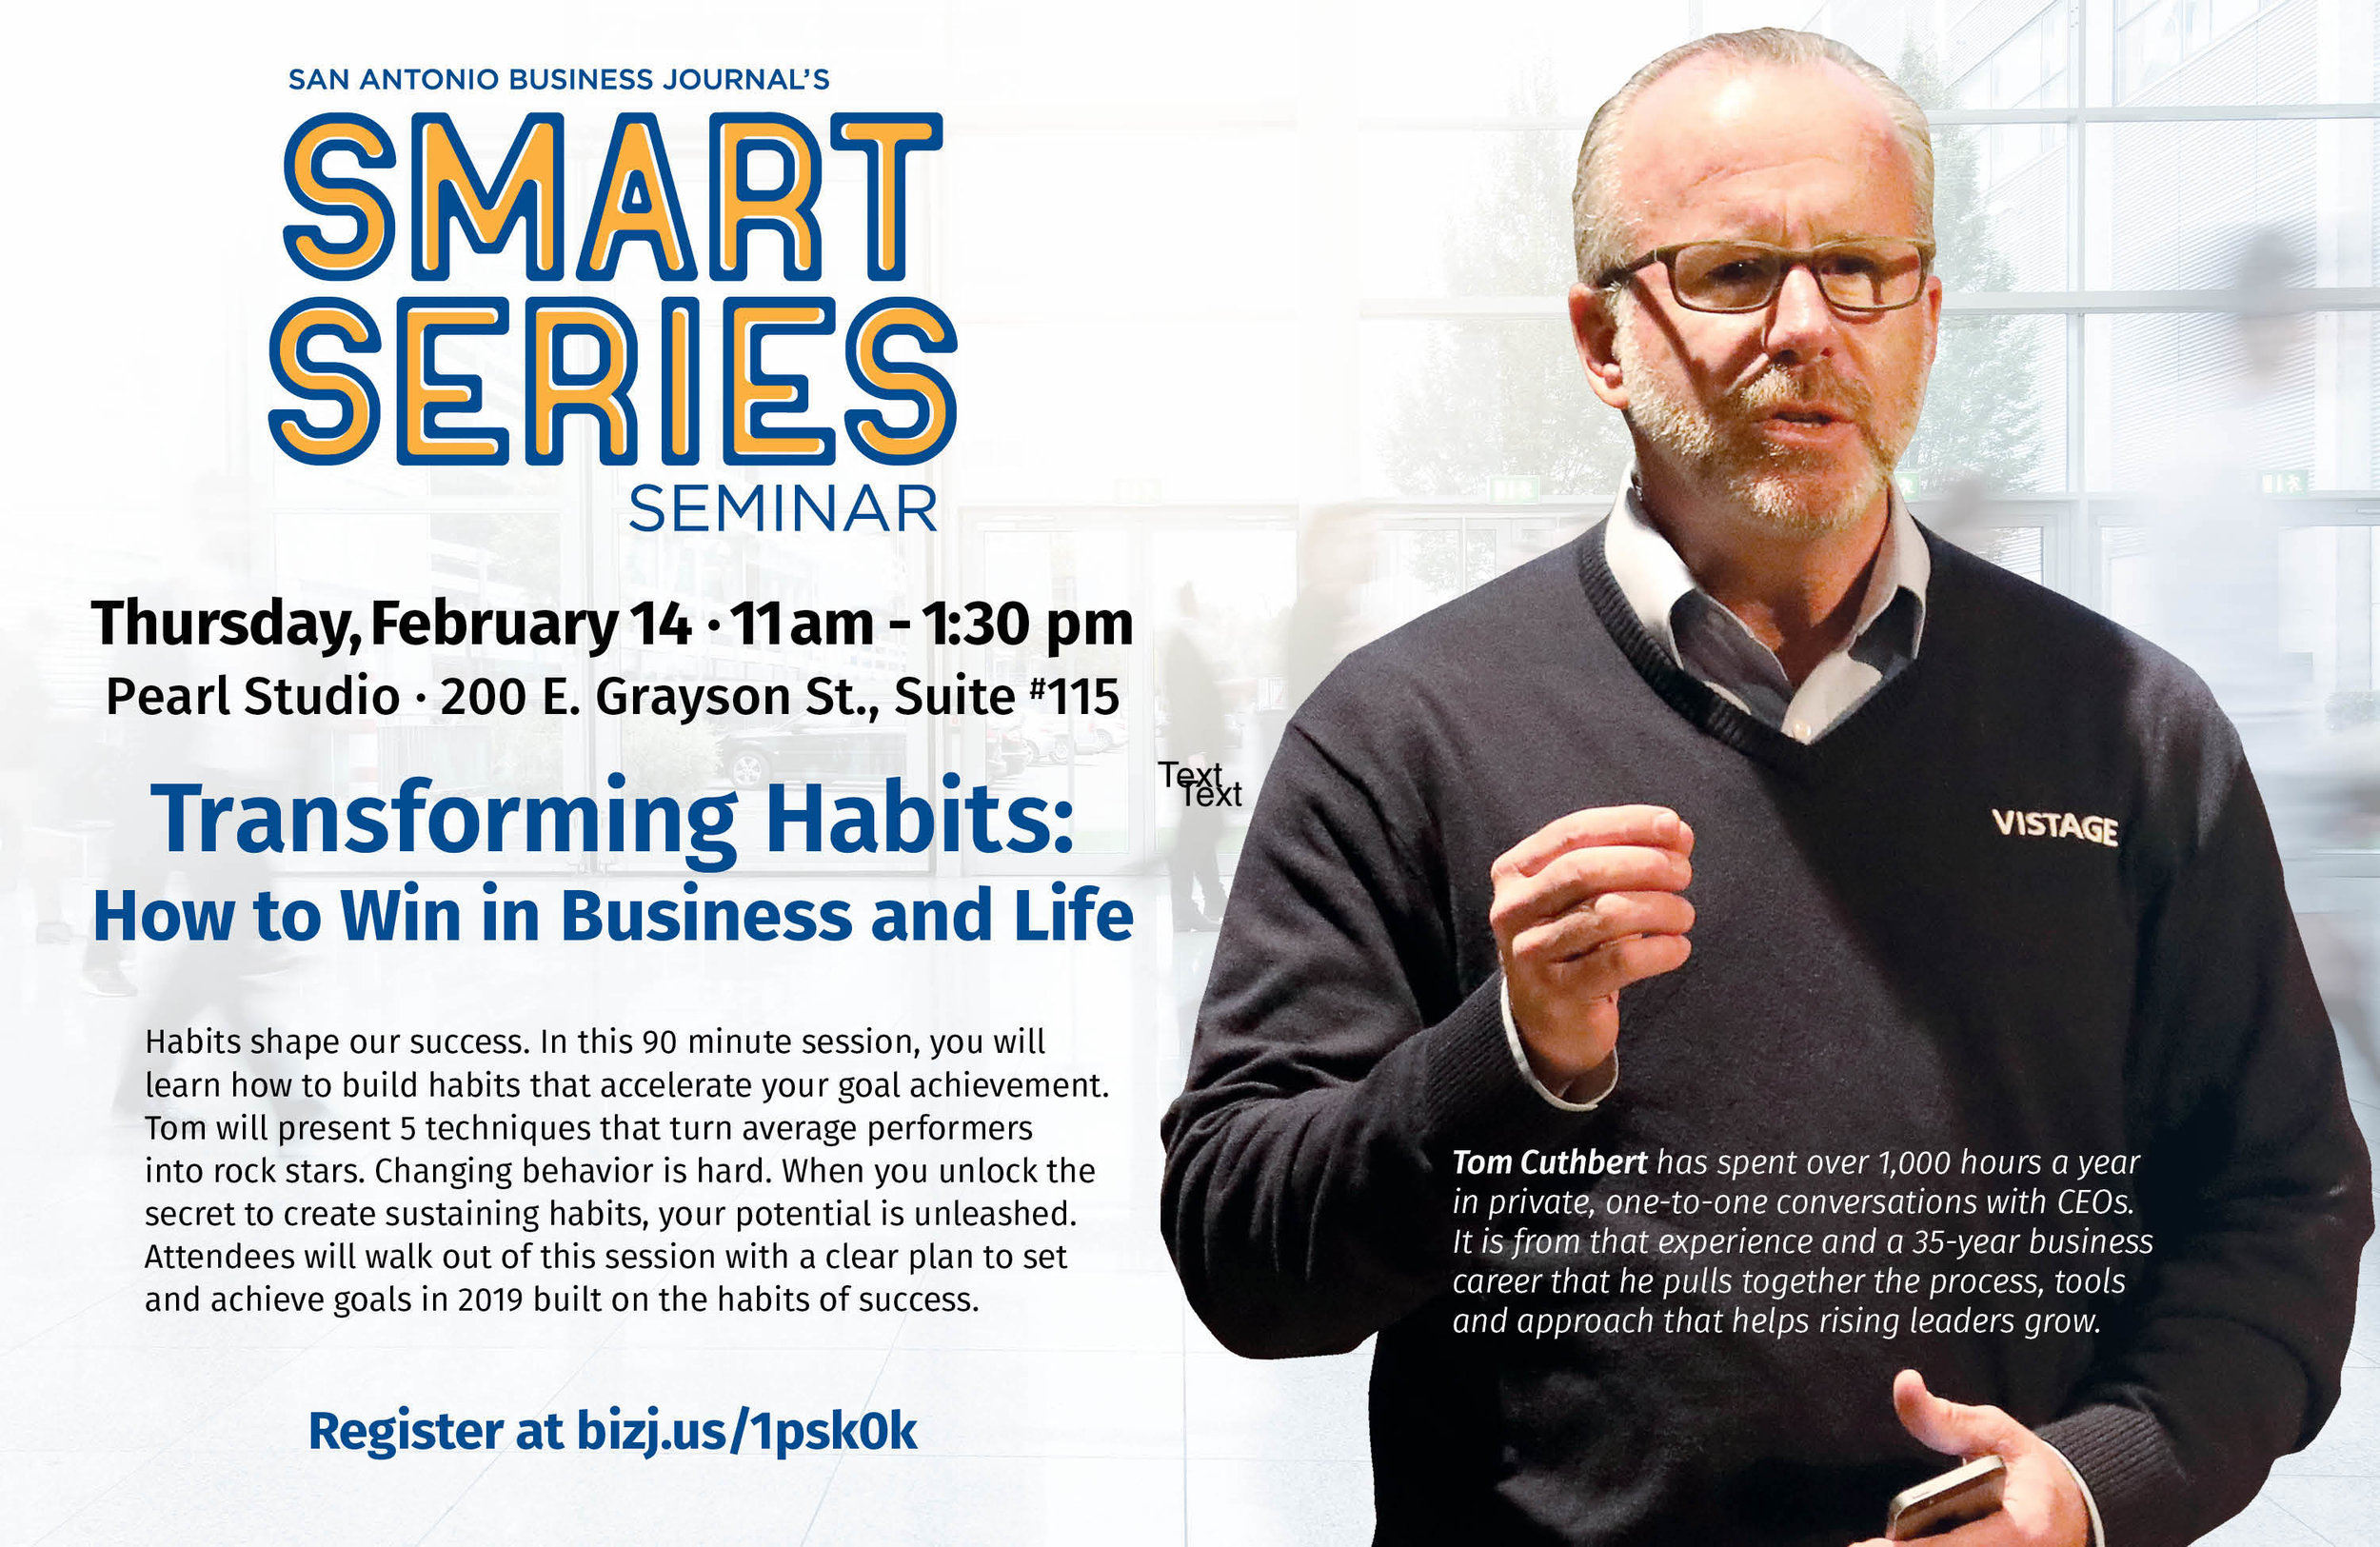 Smart Series 02.14.19_HP_TOM CUTHBERT.jpg